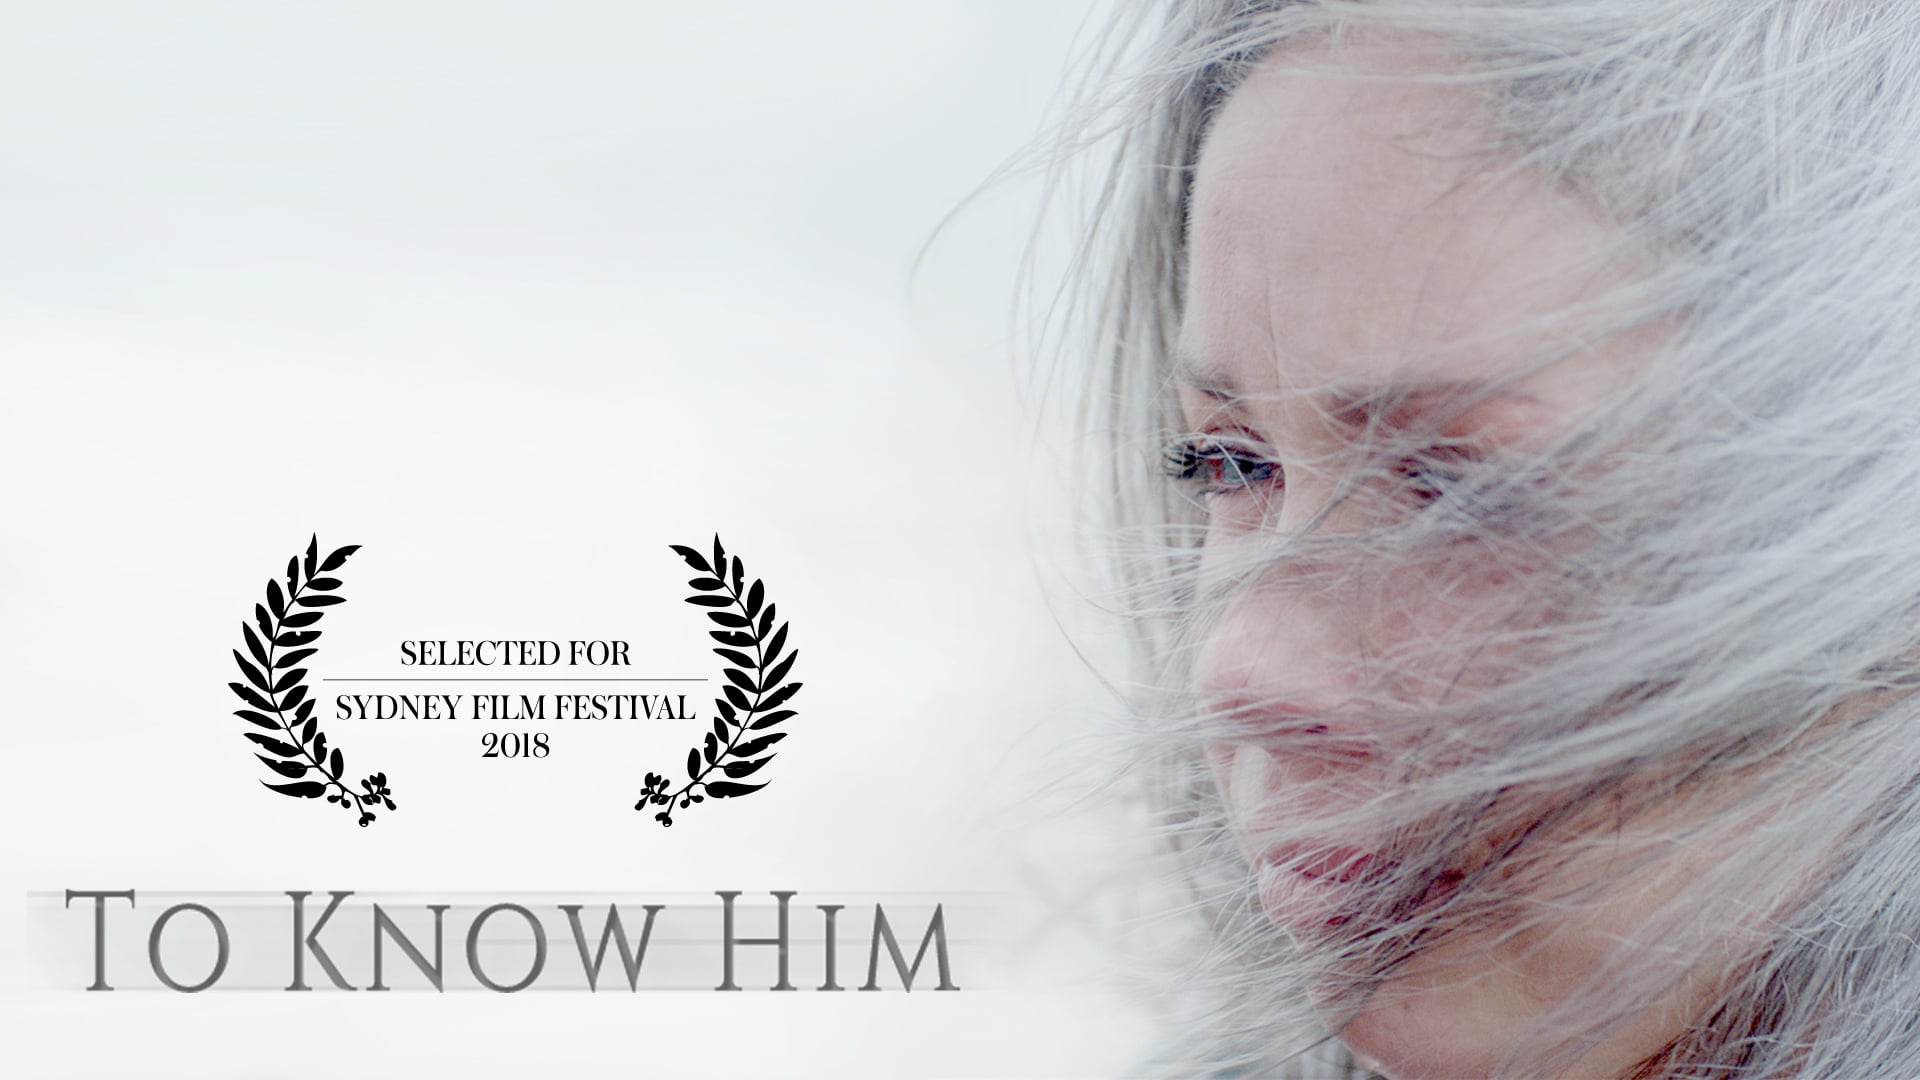 TO KNOW HIM - Trailer